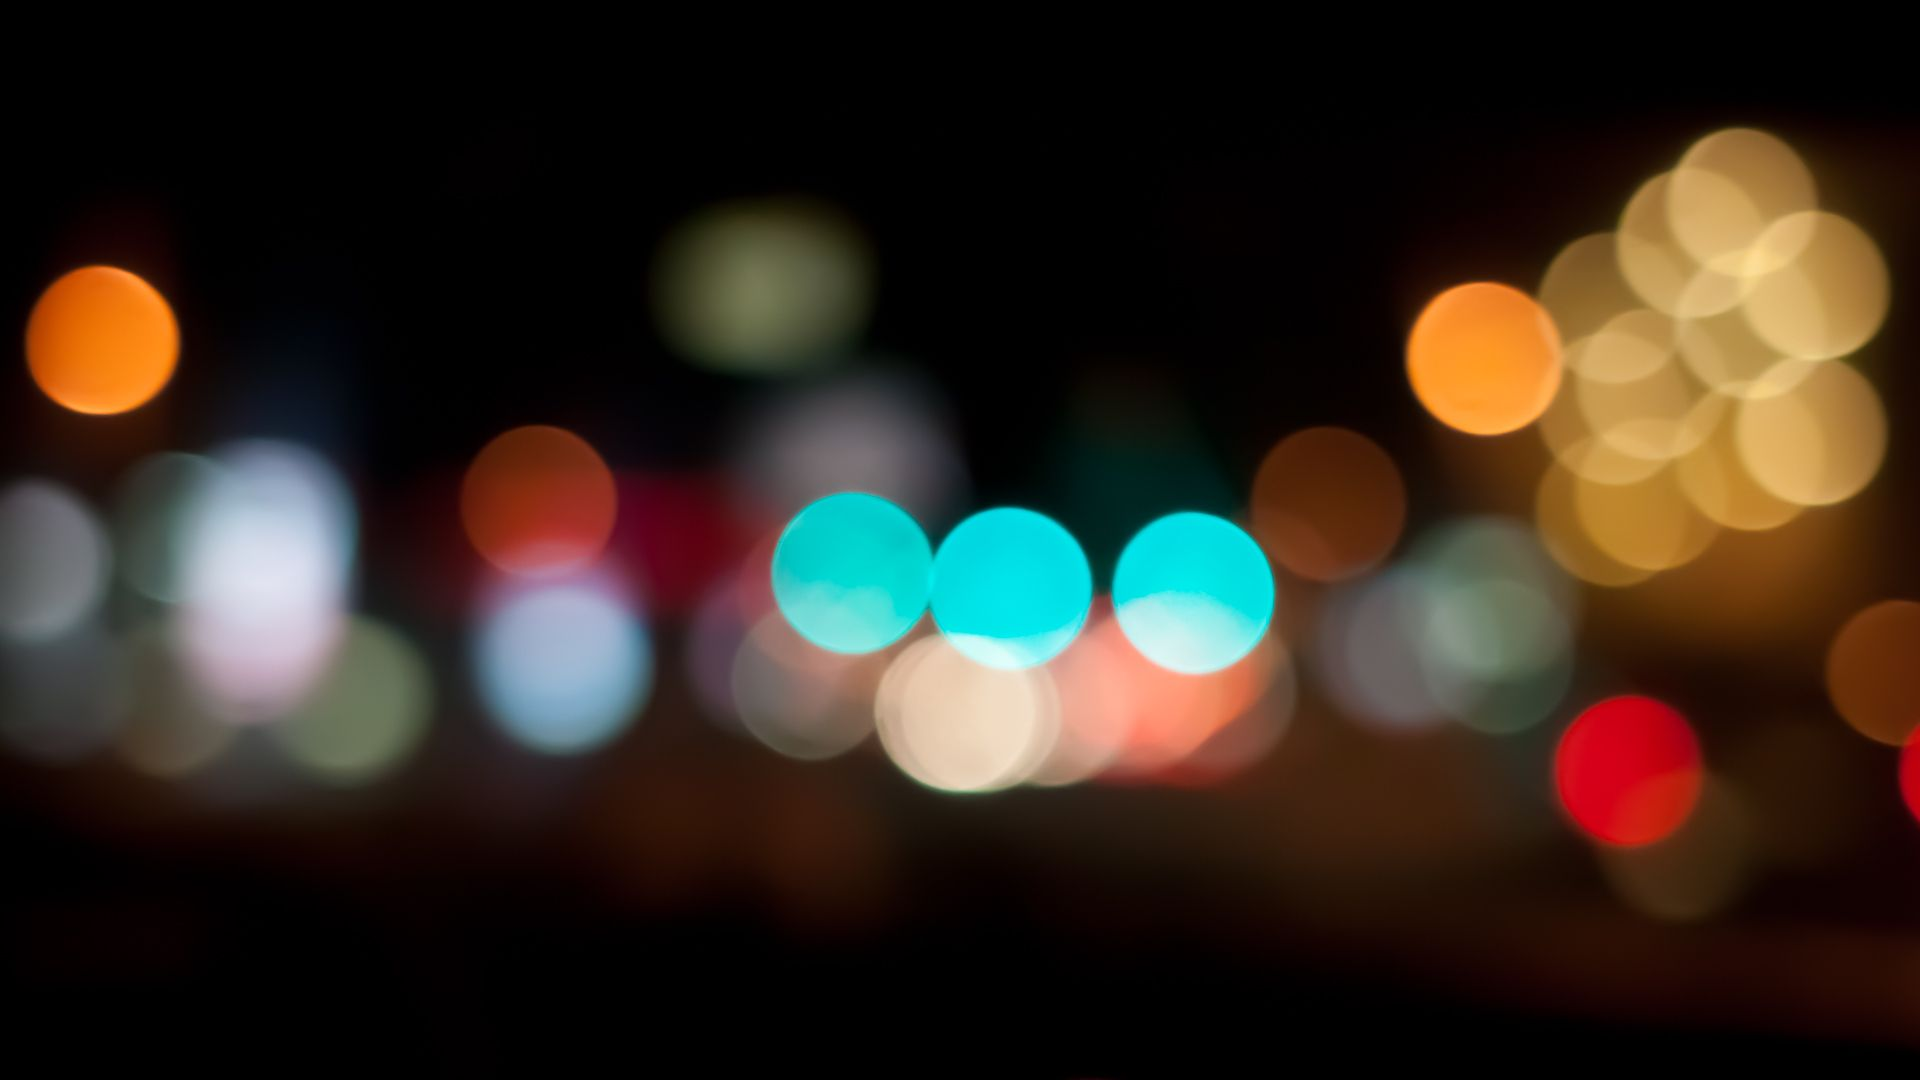 Wallpaper Abstract Color Bokeh Lights Wheels Abstraction Colors